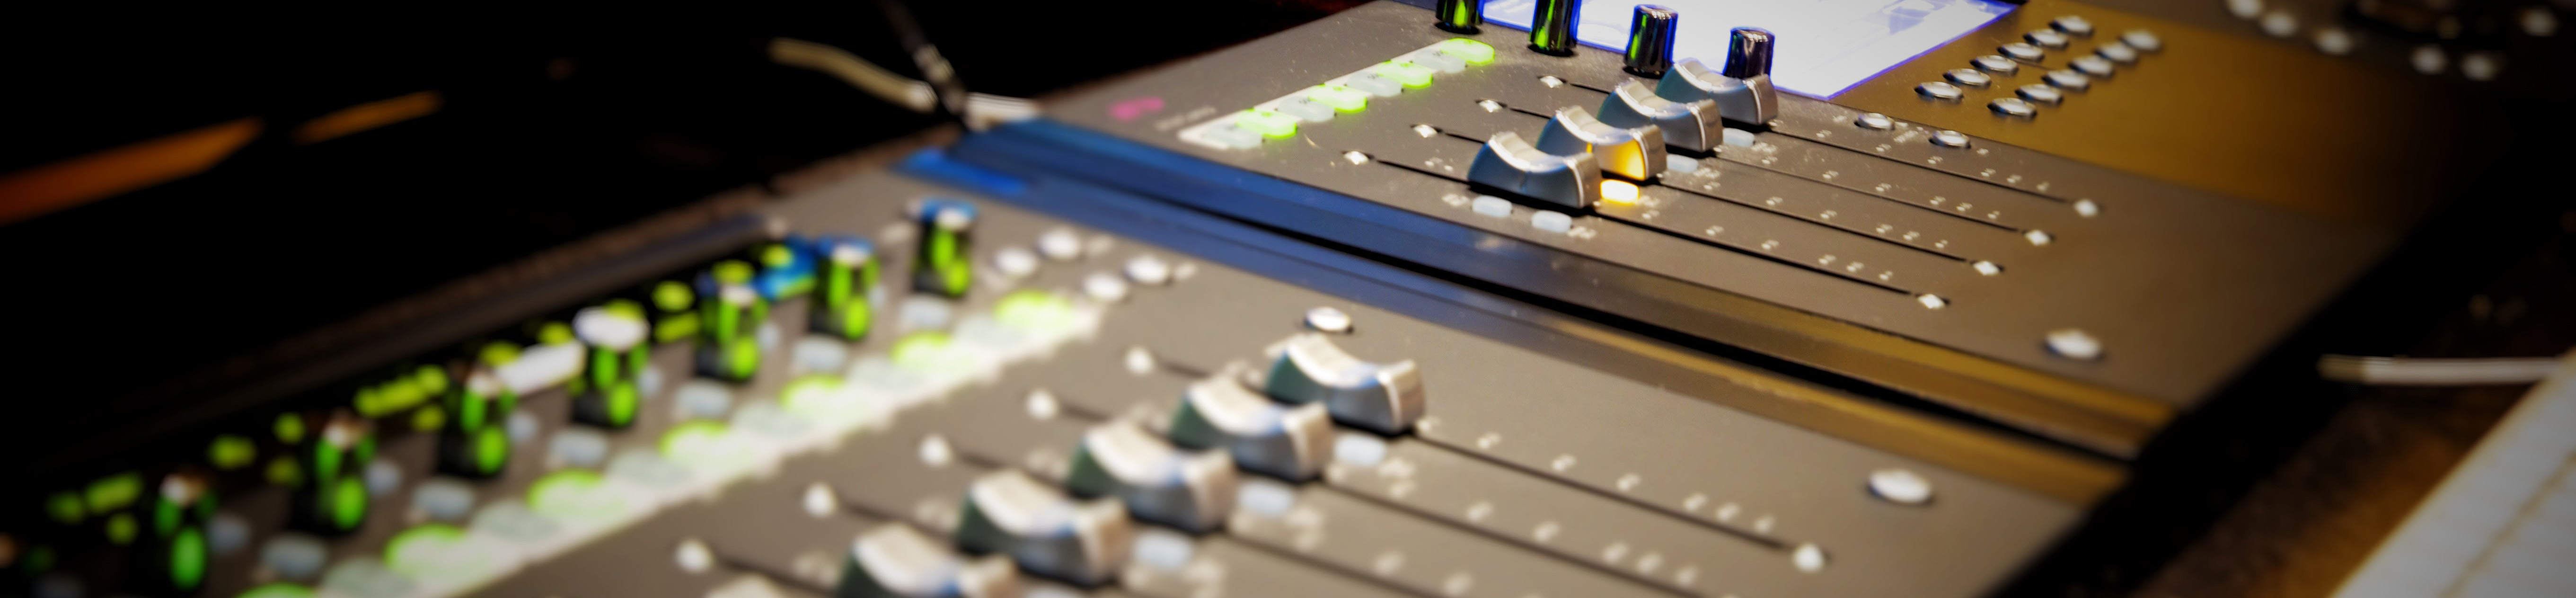 Protools-Cropped